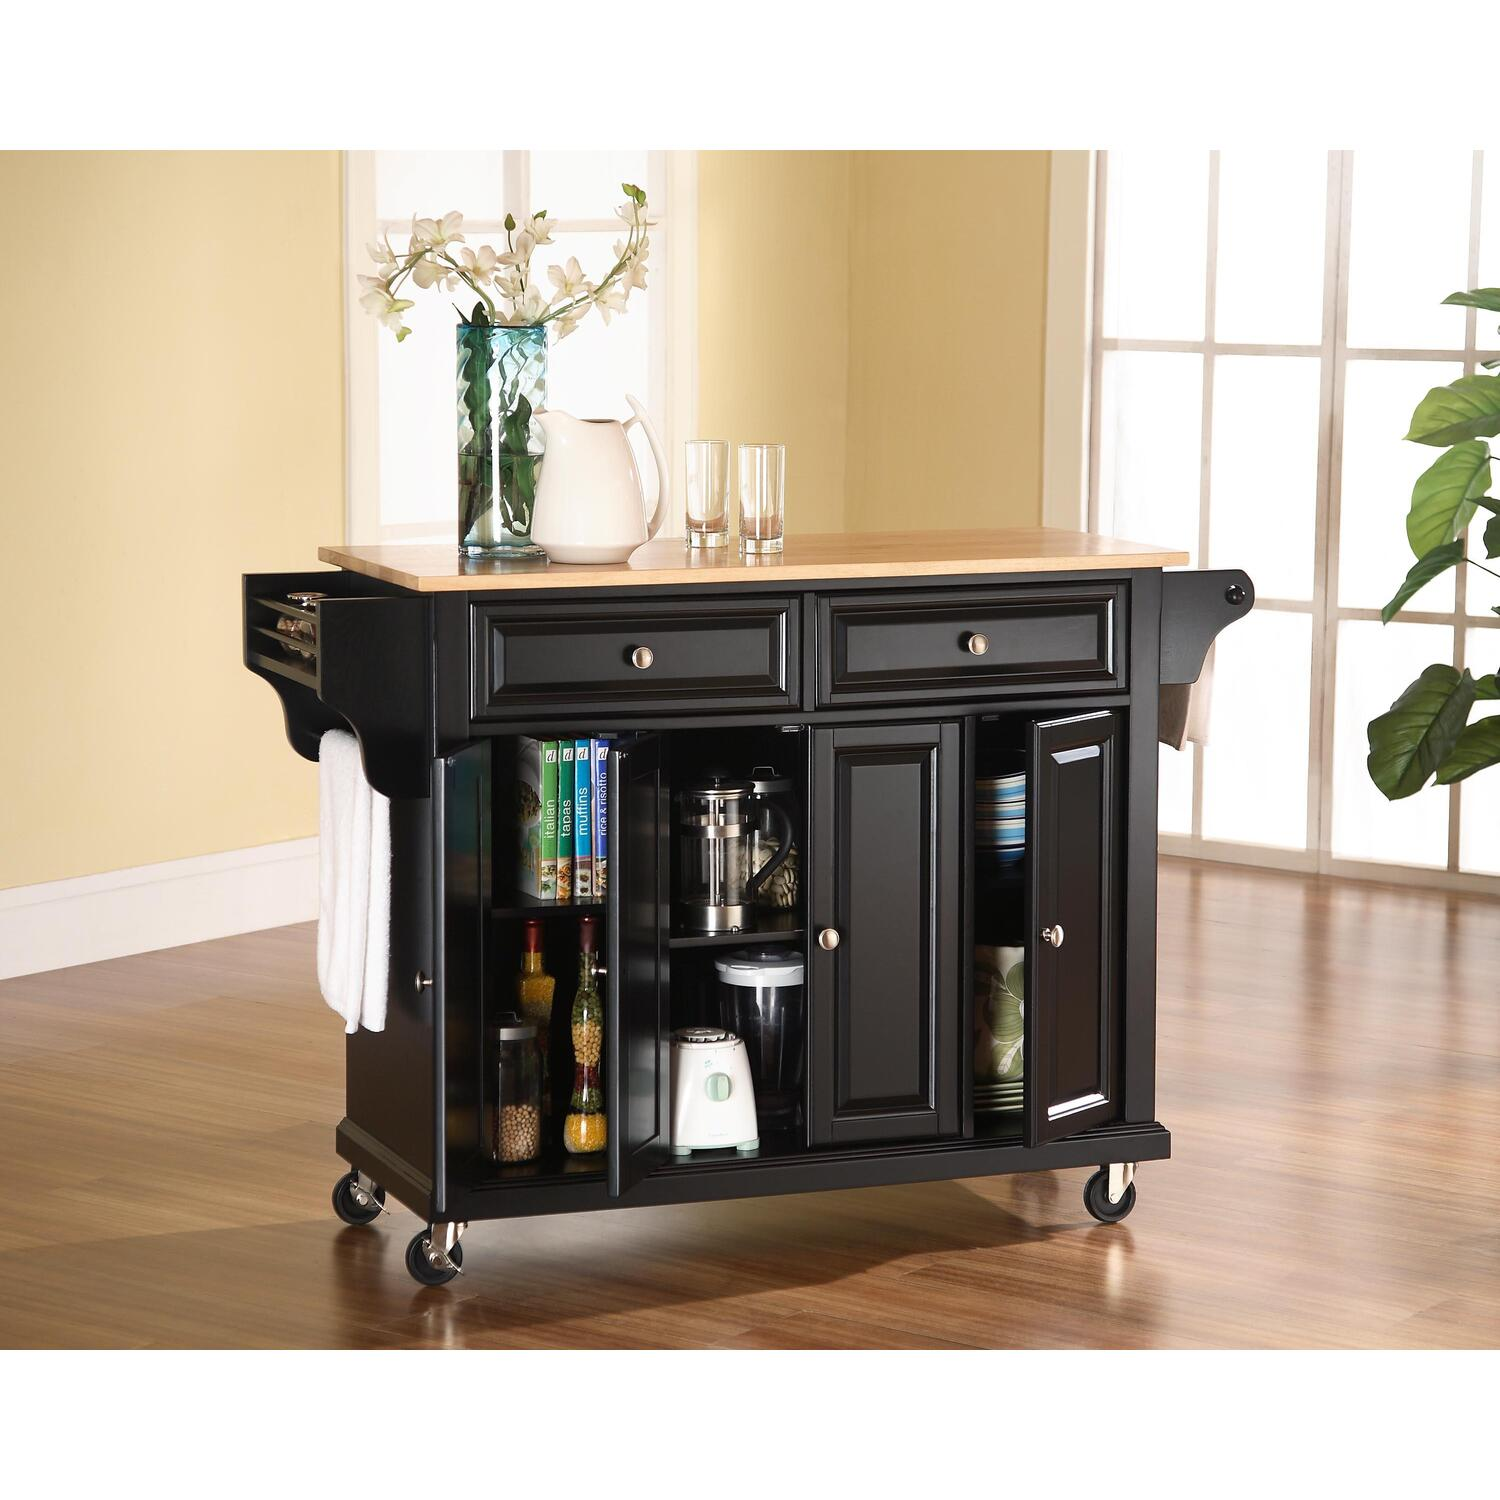 Crosley Kitchen Cart/Island By OJ Commerce $369.00